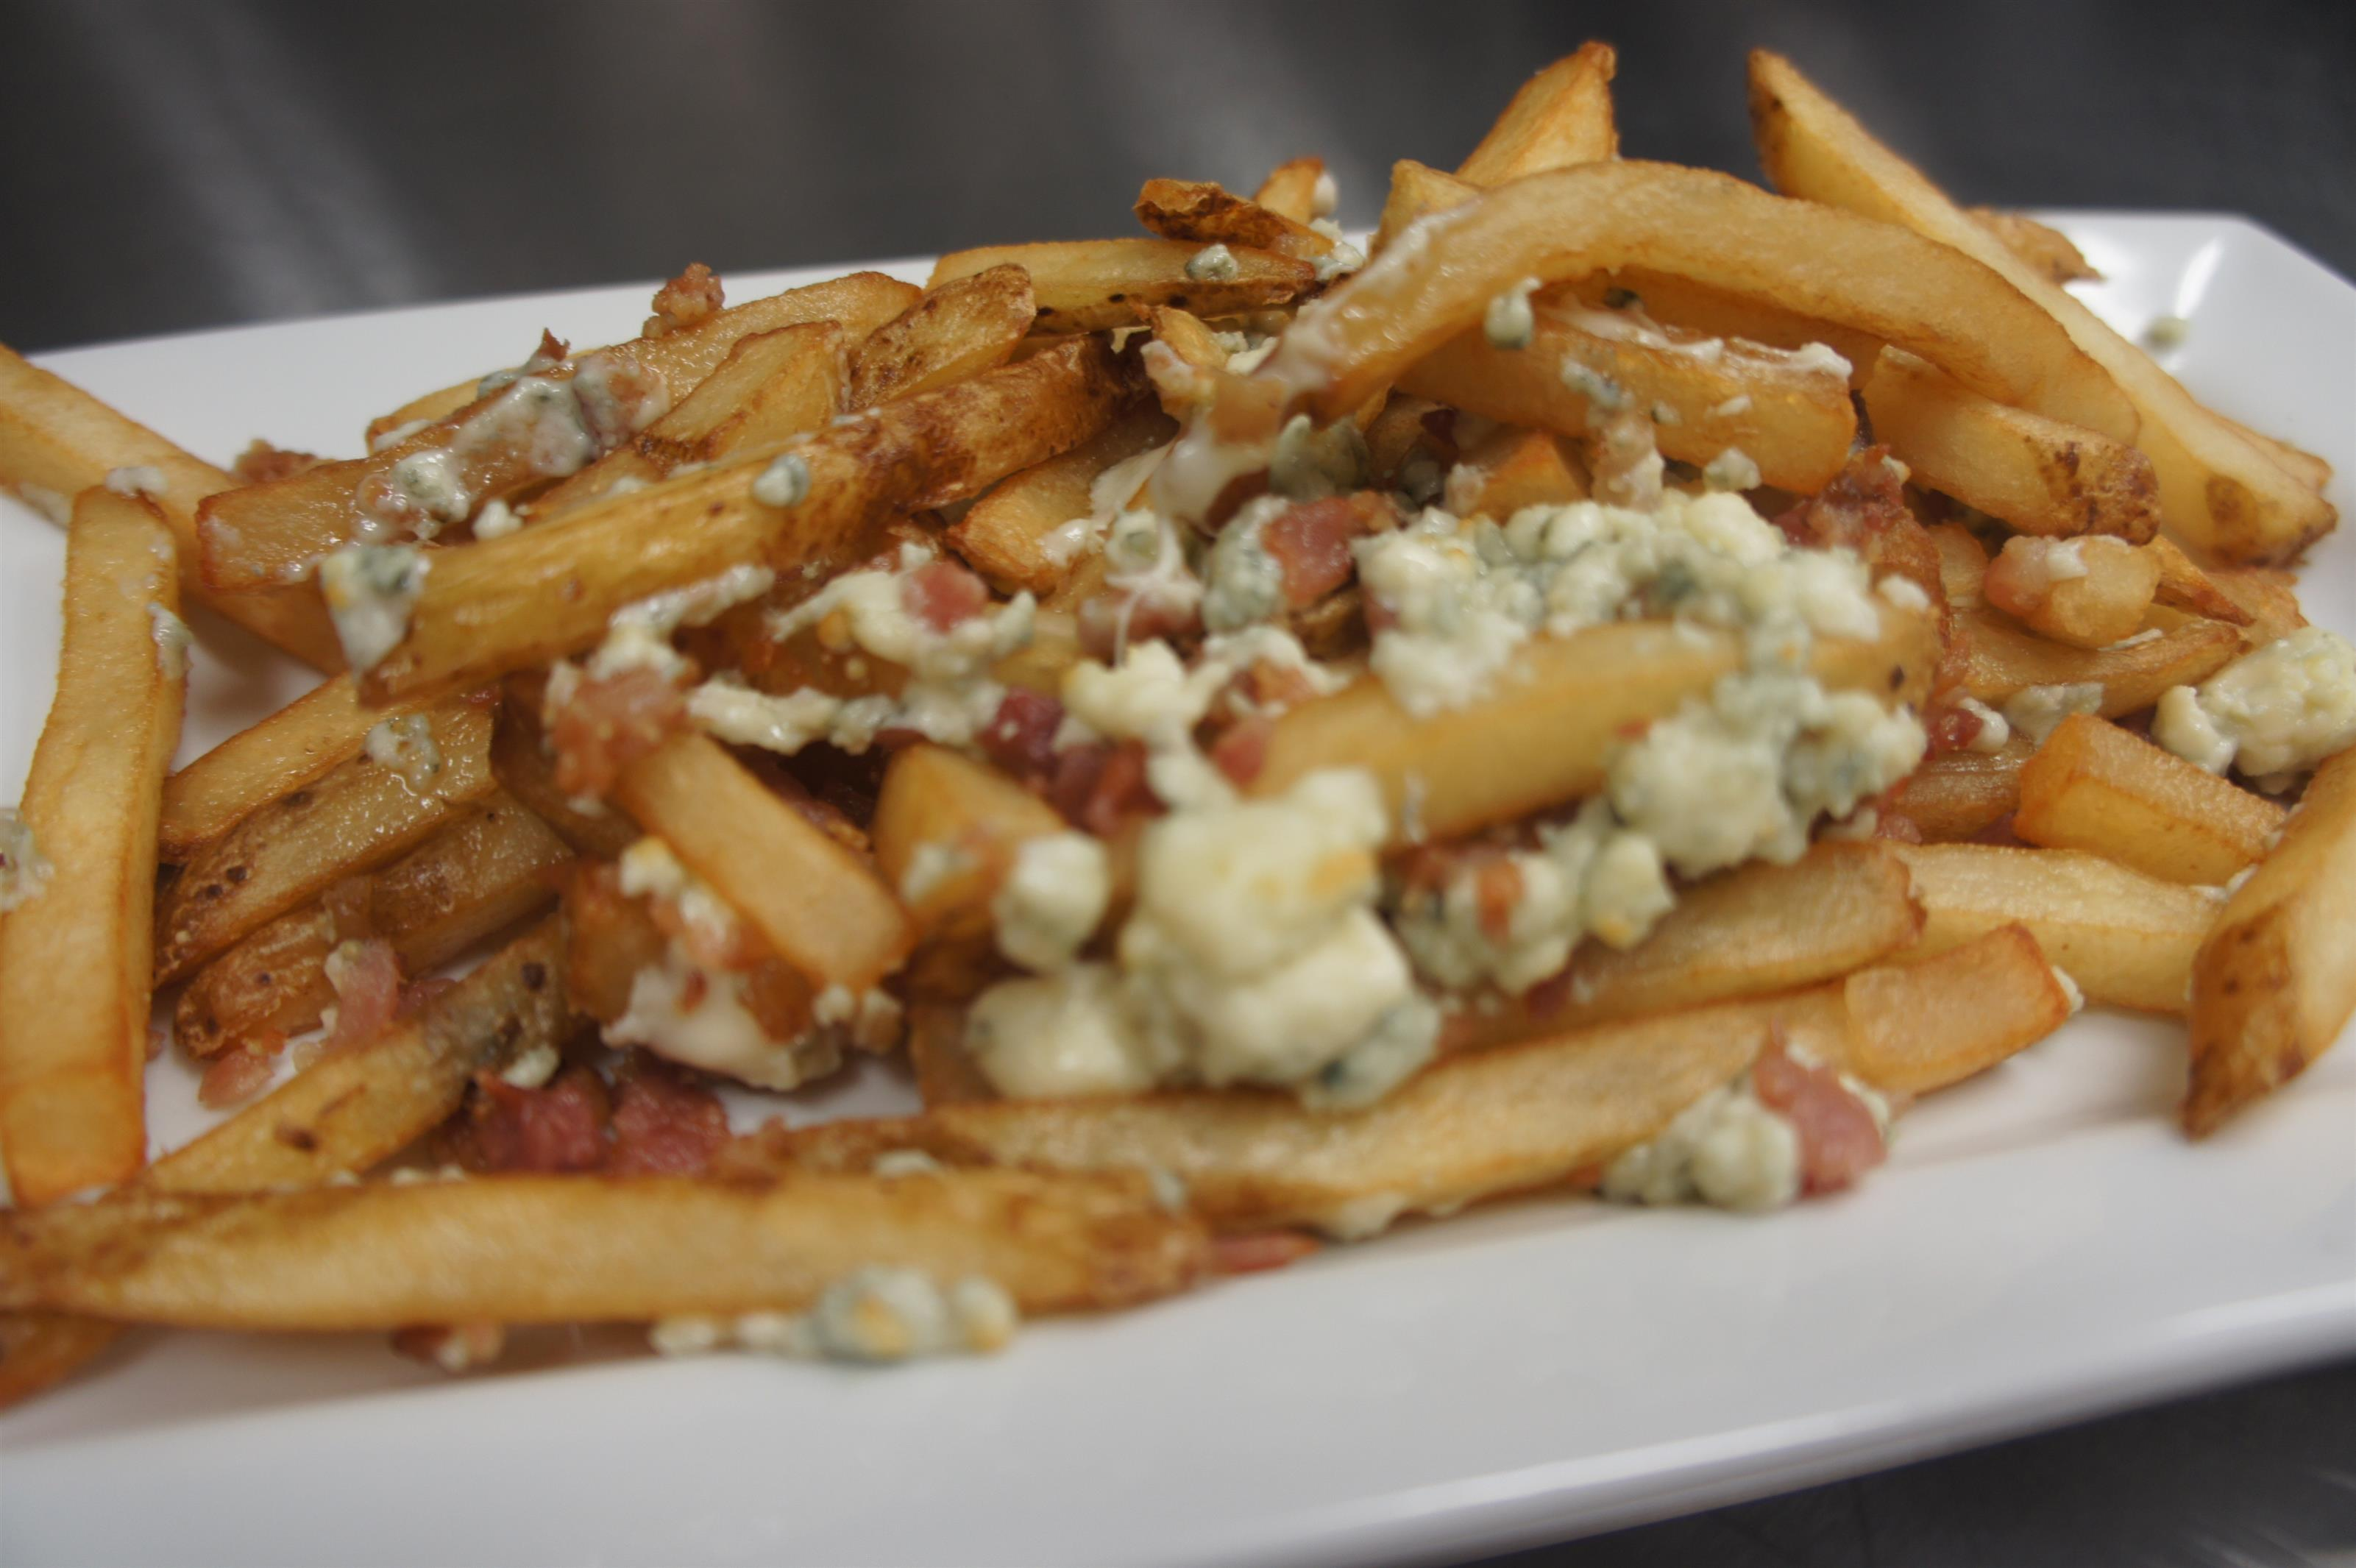 Poutine fries served with cheese curds and bacon bits